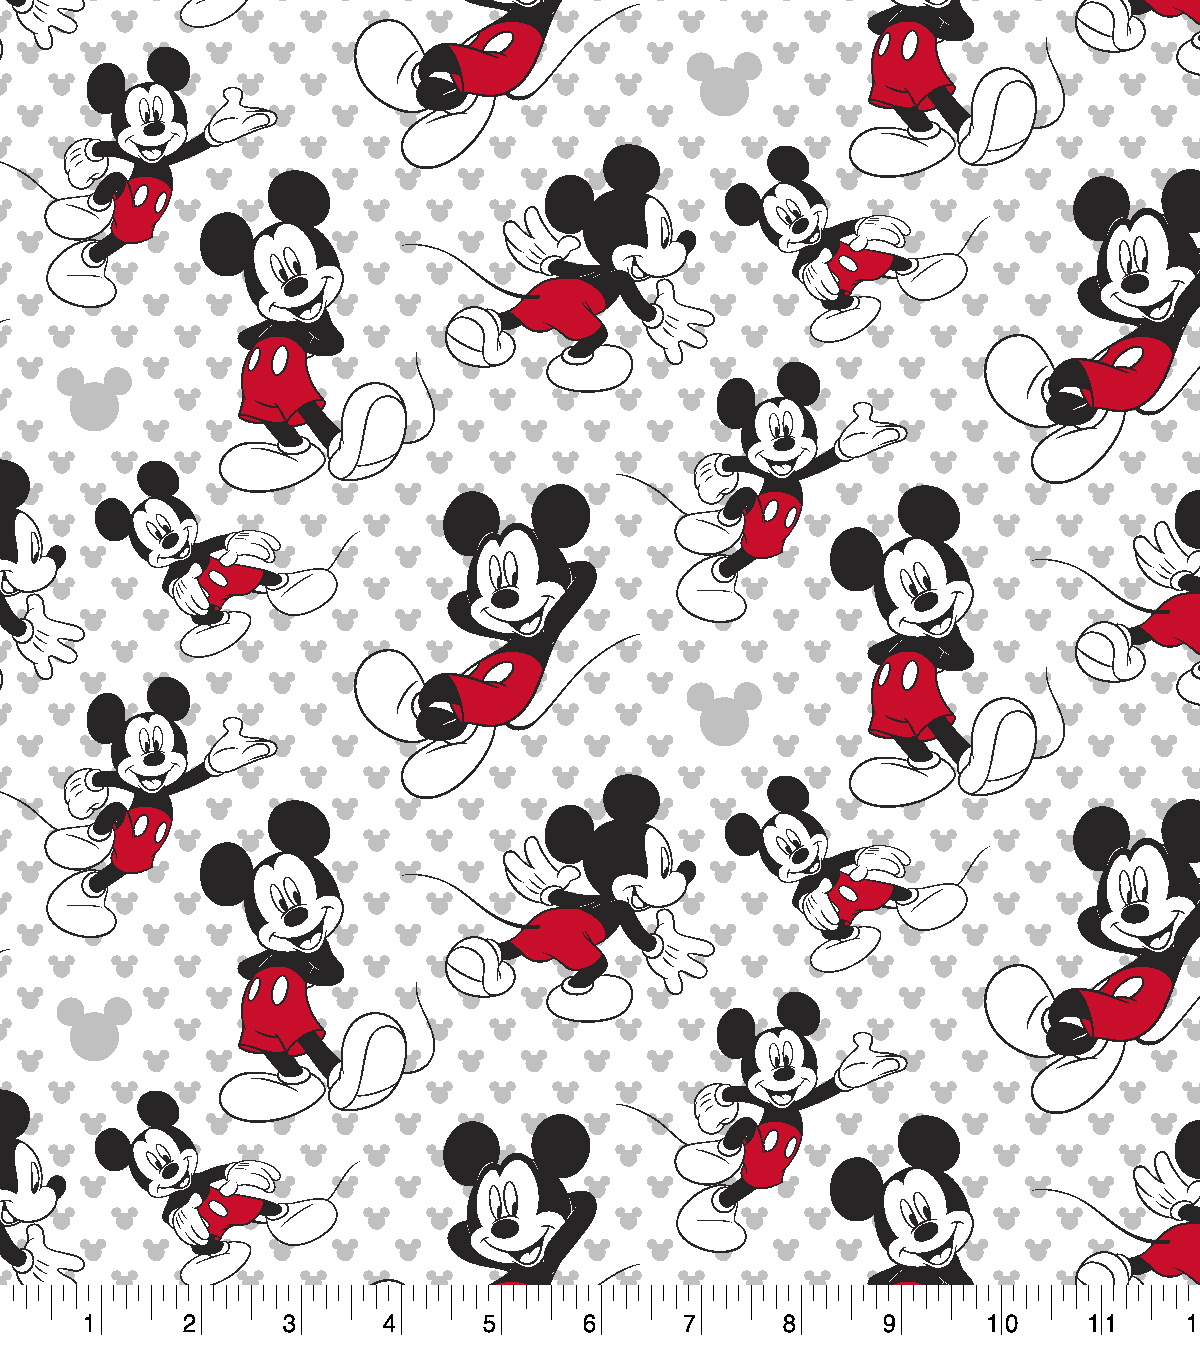 Disney Mickey Mouse Cotton Fabric 43 Totally Mickey Toss